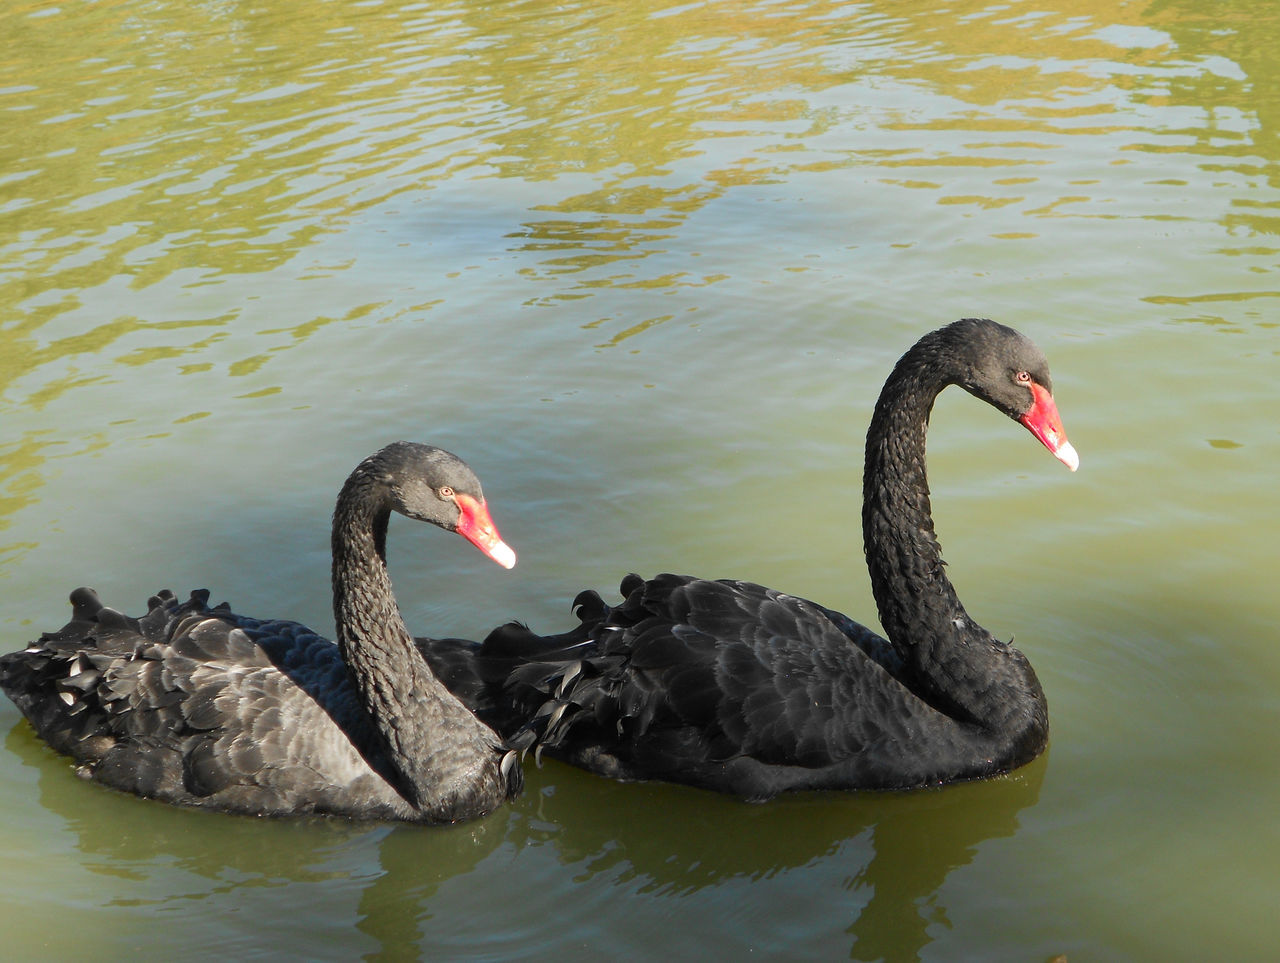 Two Is Better Than One BlackSwan Black Swan Nature Blackswans Black Swans